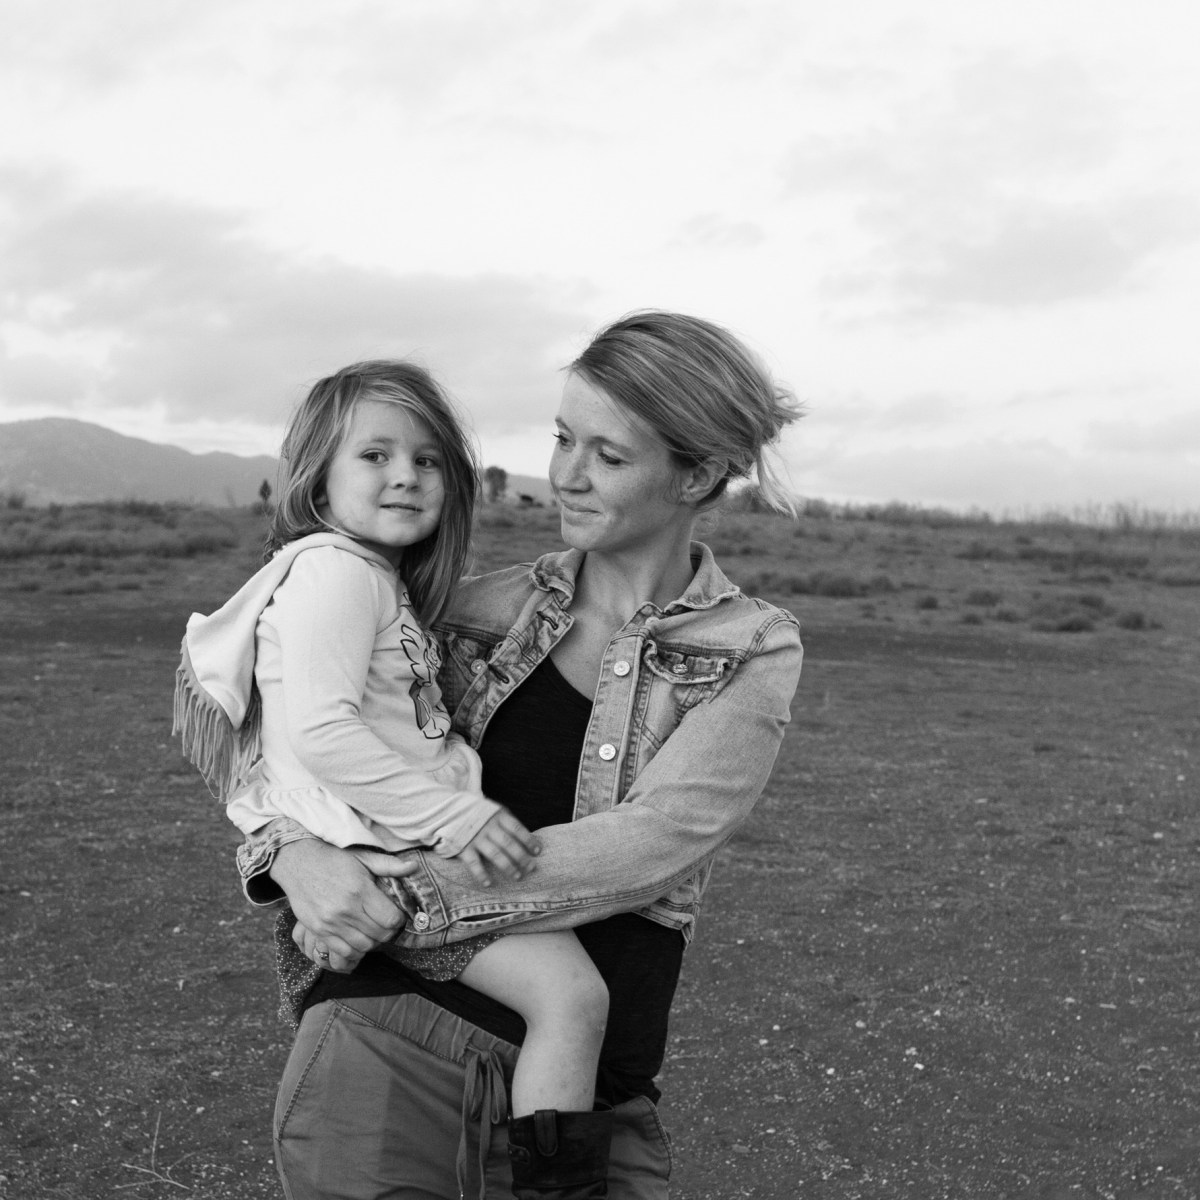 Being a mom is hard, and that's okay.